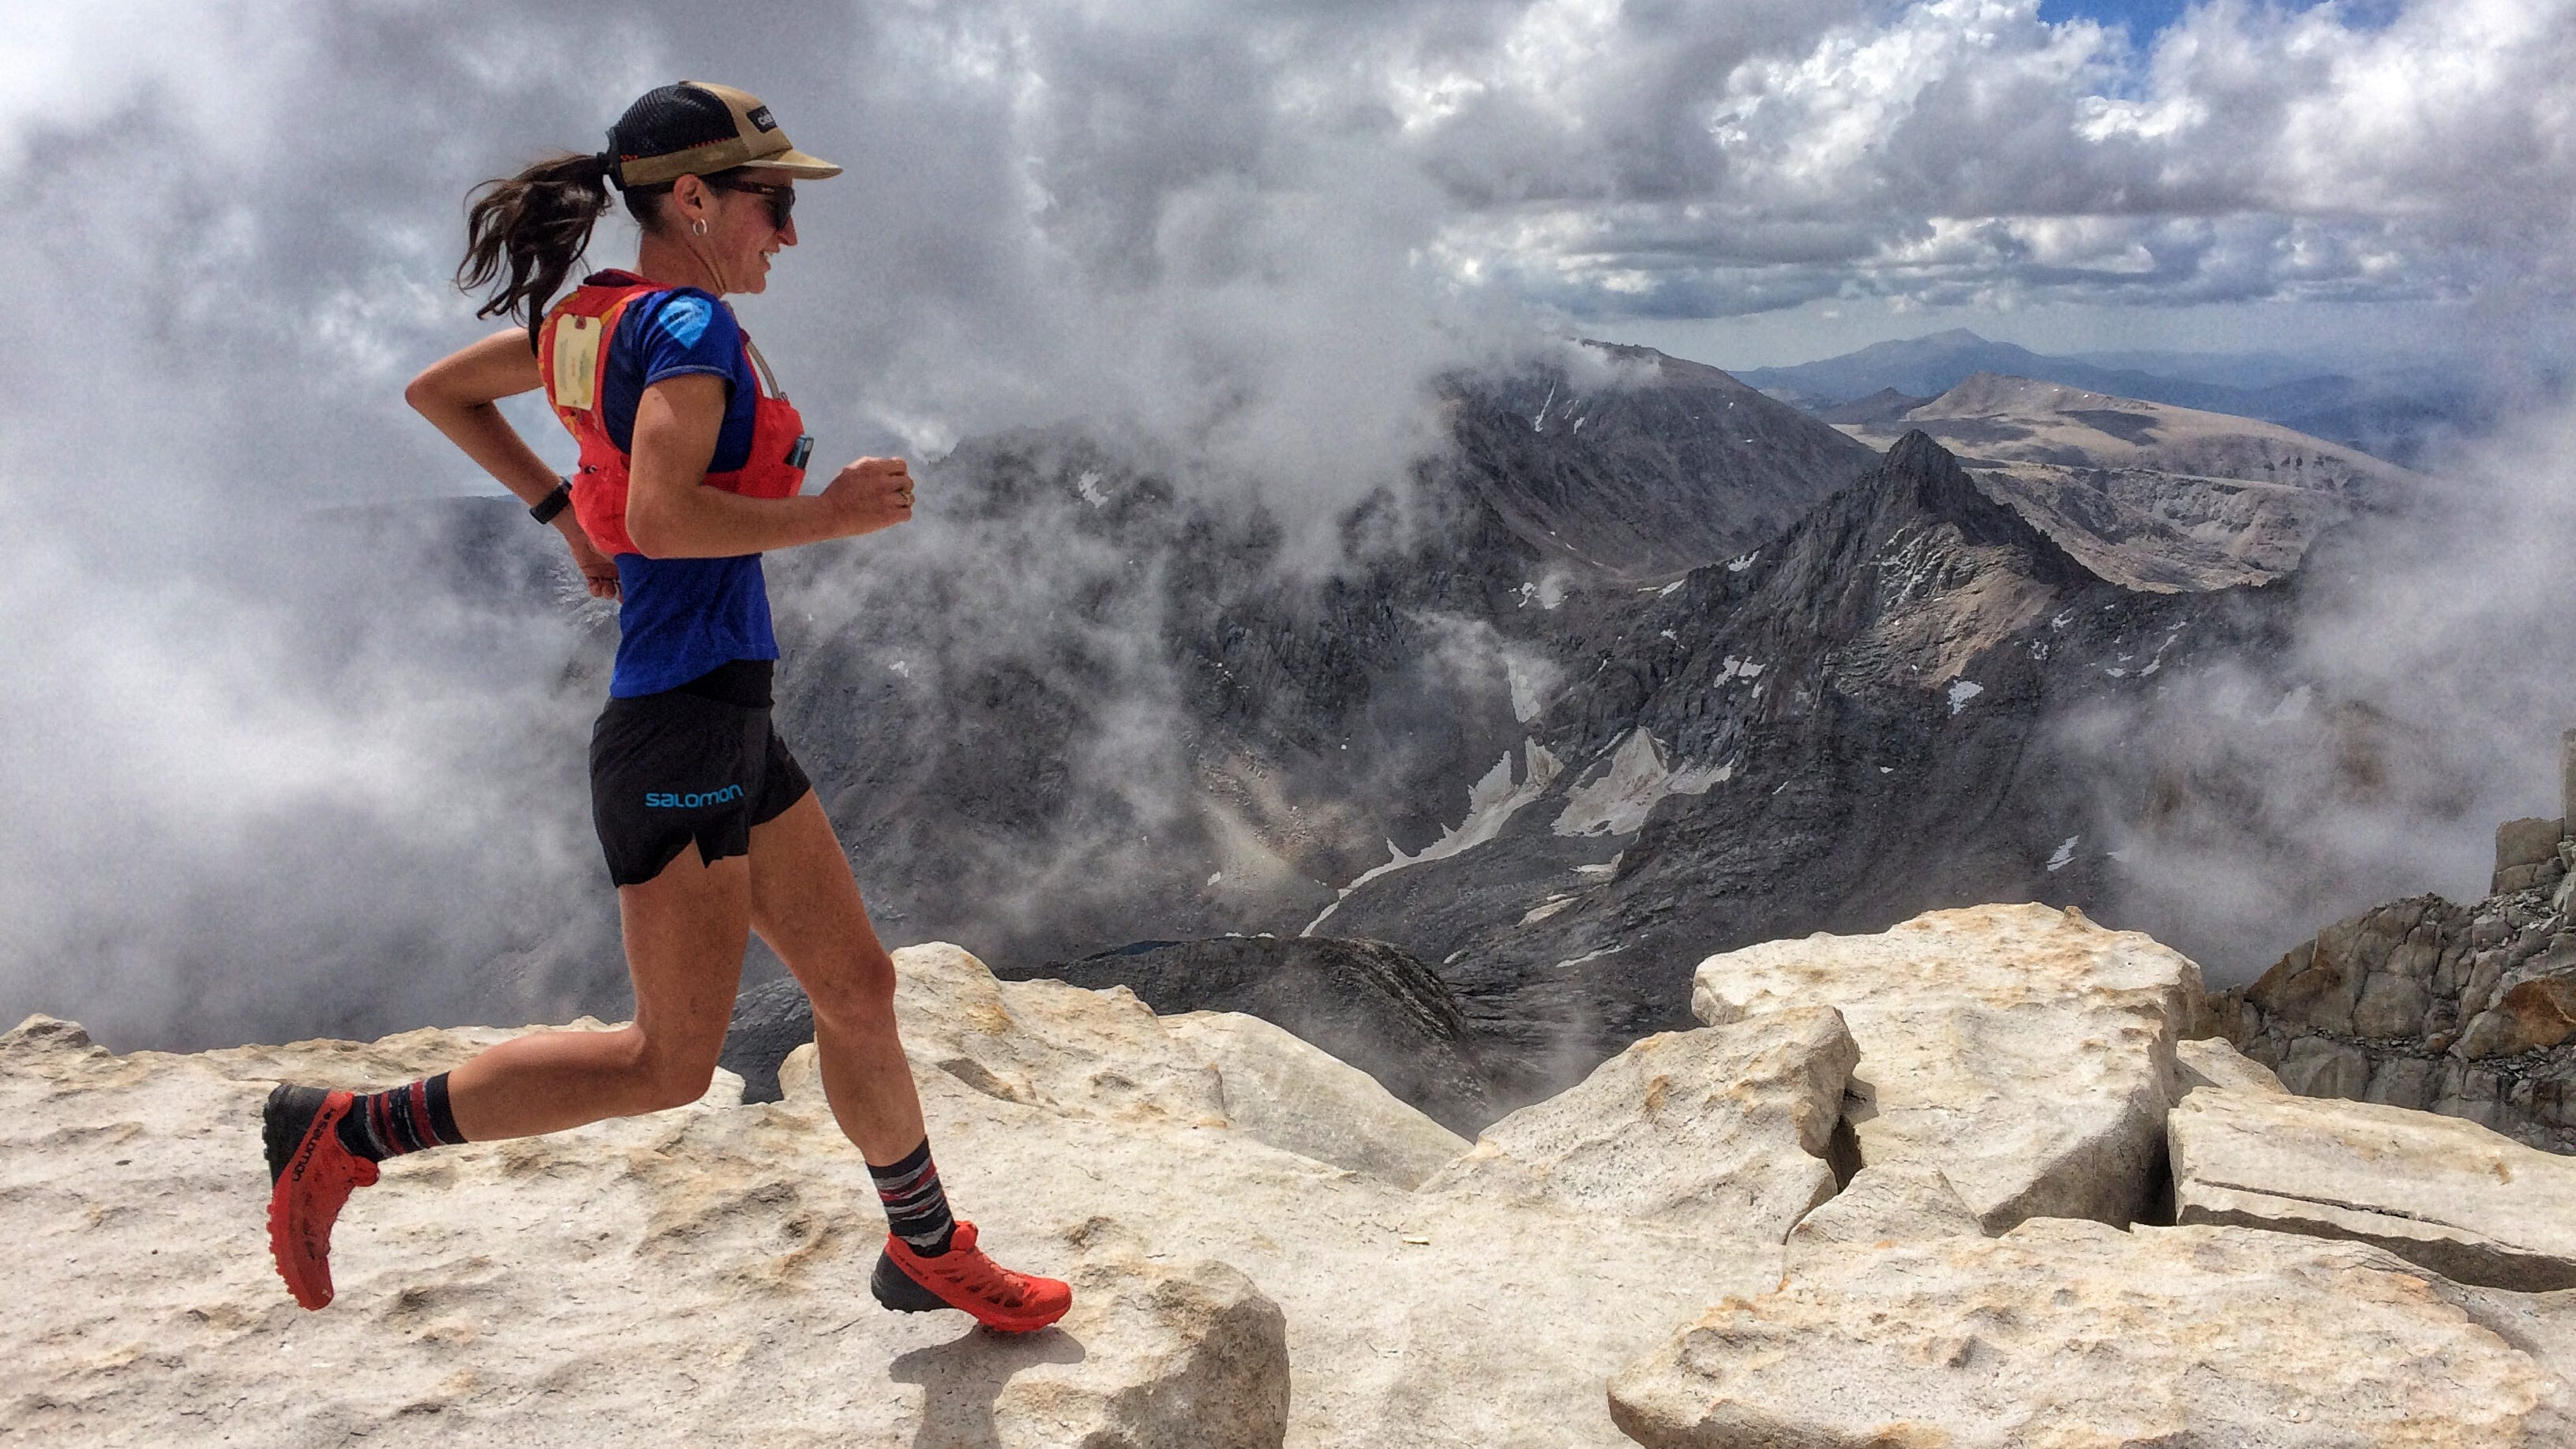 Patricia Franco, 26, near the summit of Mt. Whitney, the highest point in the lower 48 states on July 20, 2018. Less than a month later Franco set a fastest known time on Whitney's Mountaineer's Route.